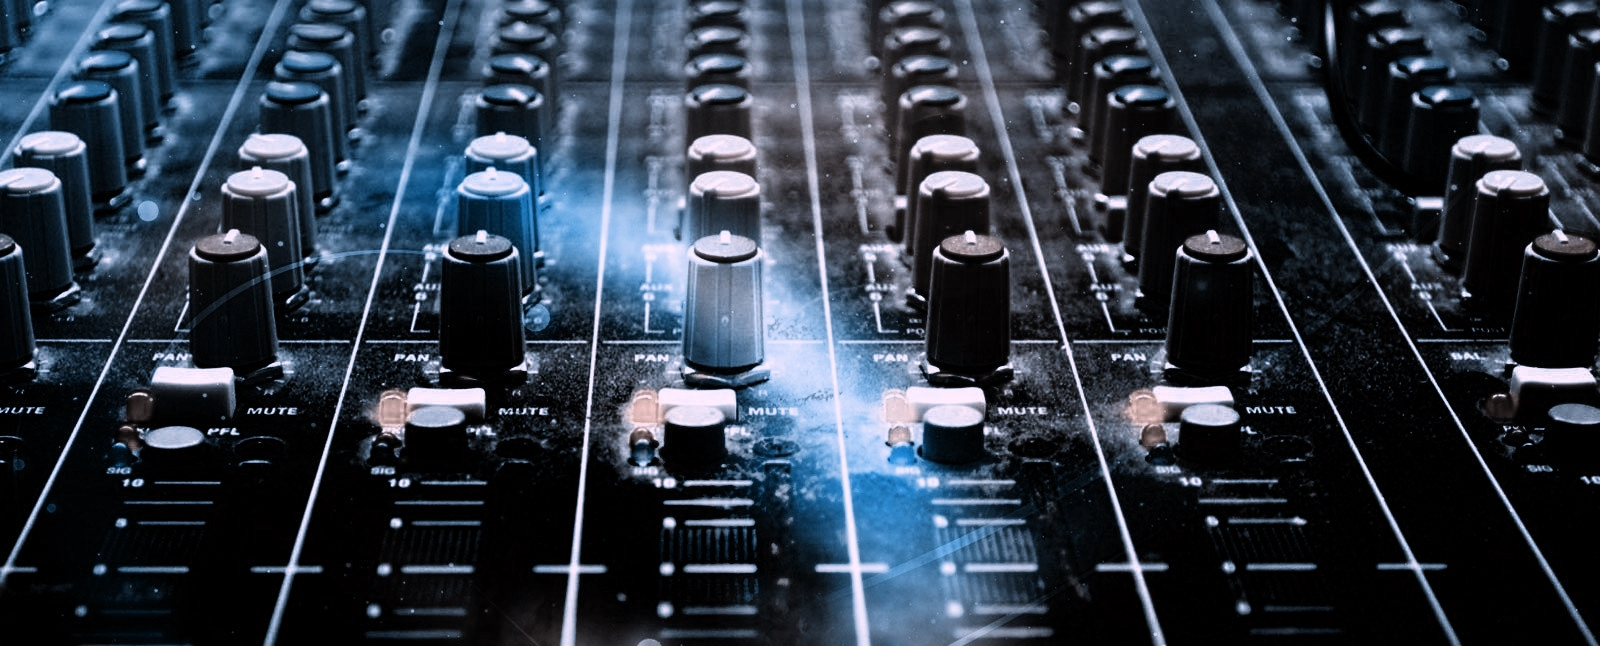 I will professionally mix master your vocal, music and media